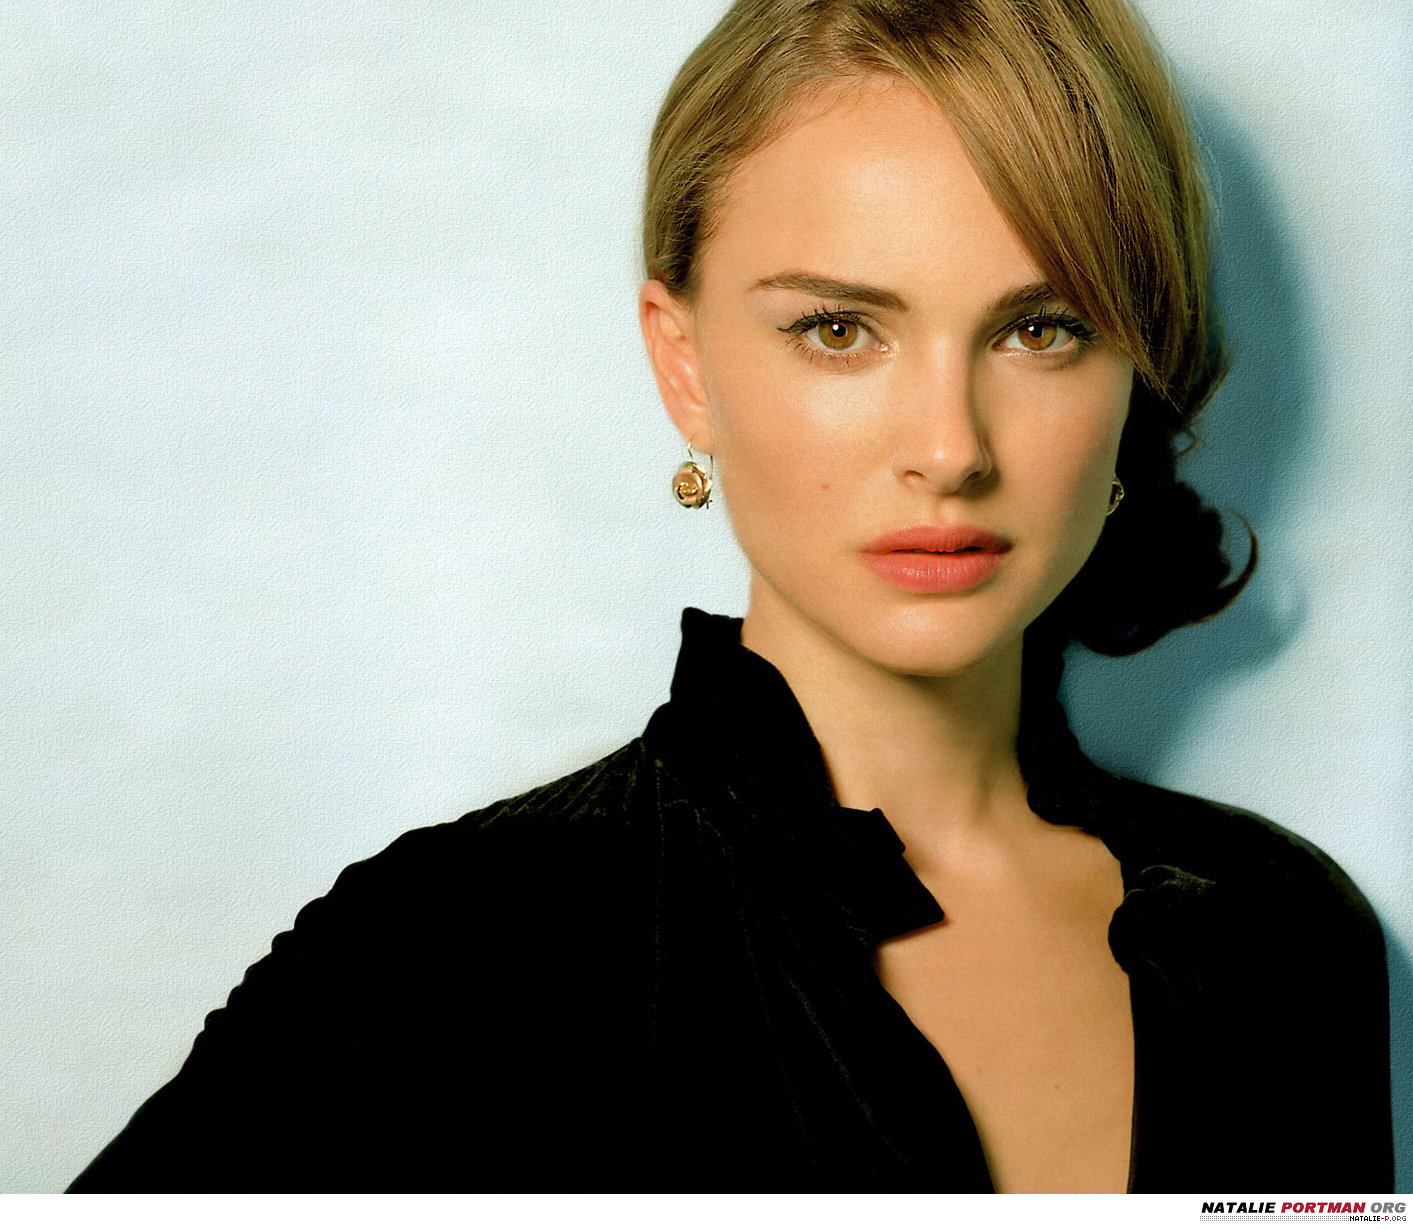 natalie portman - photo #7